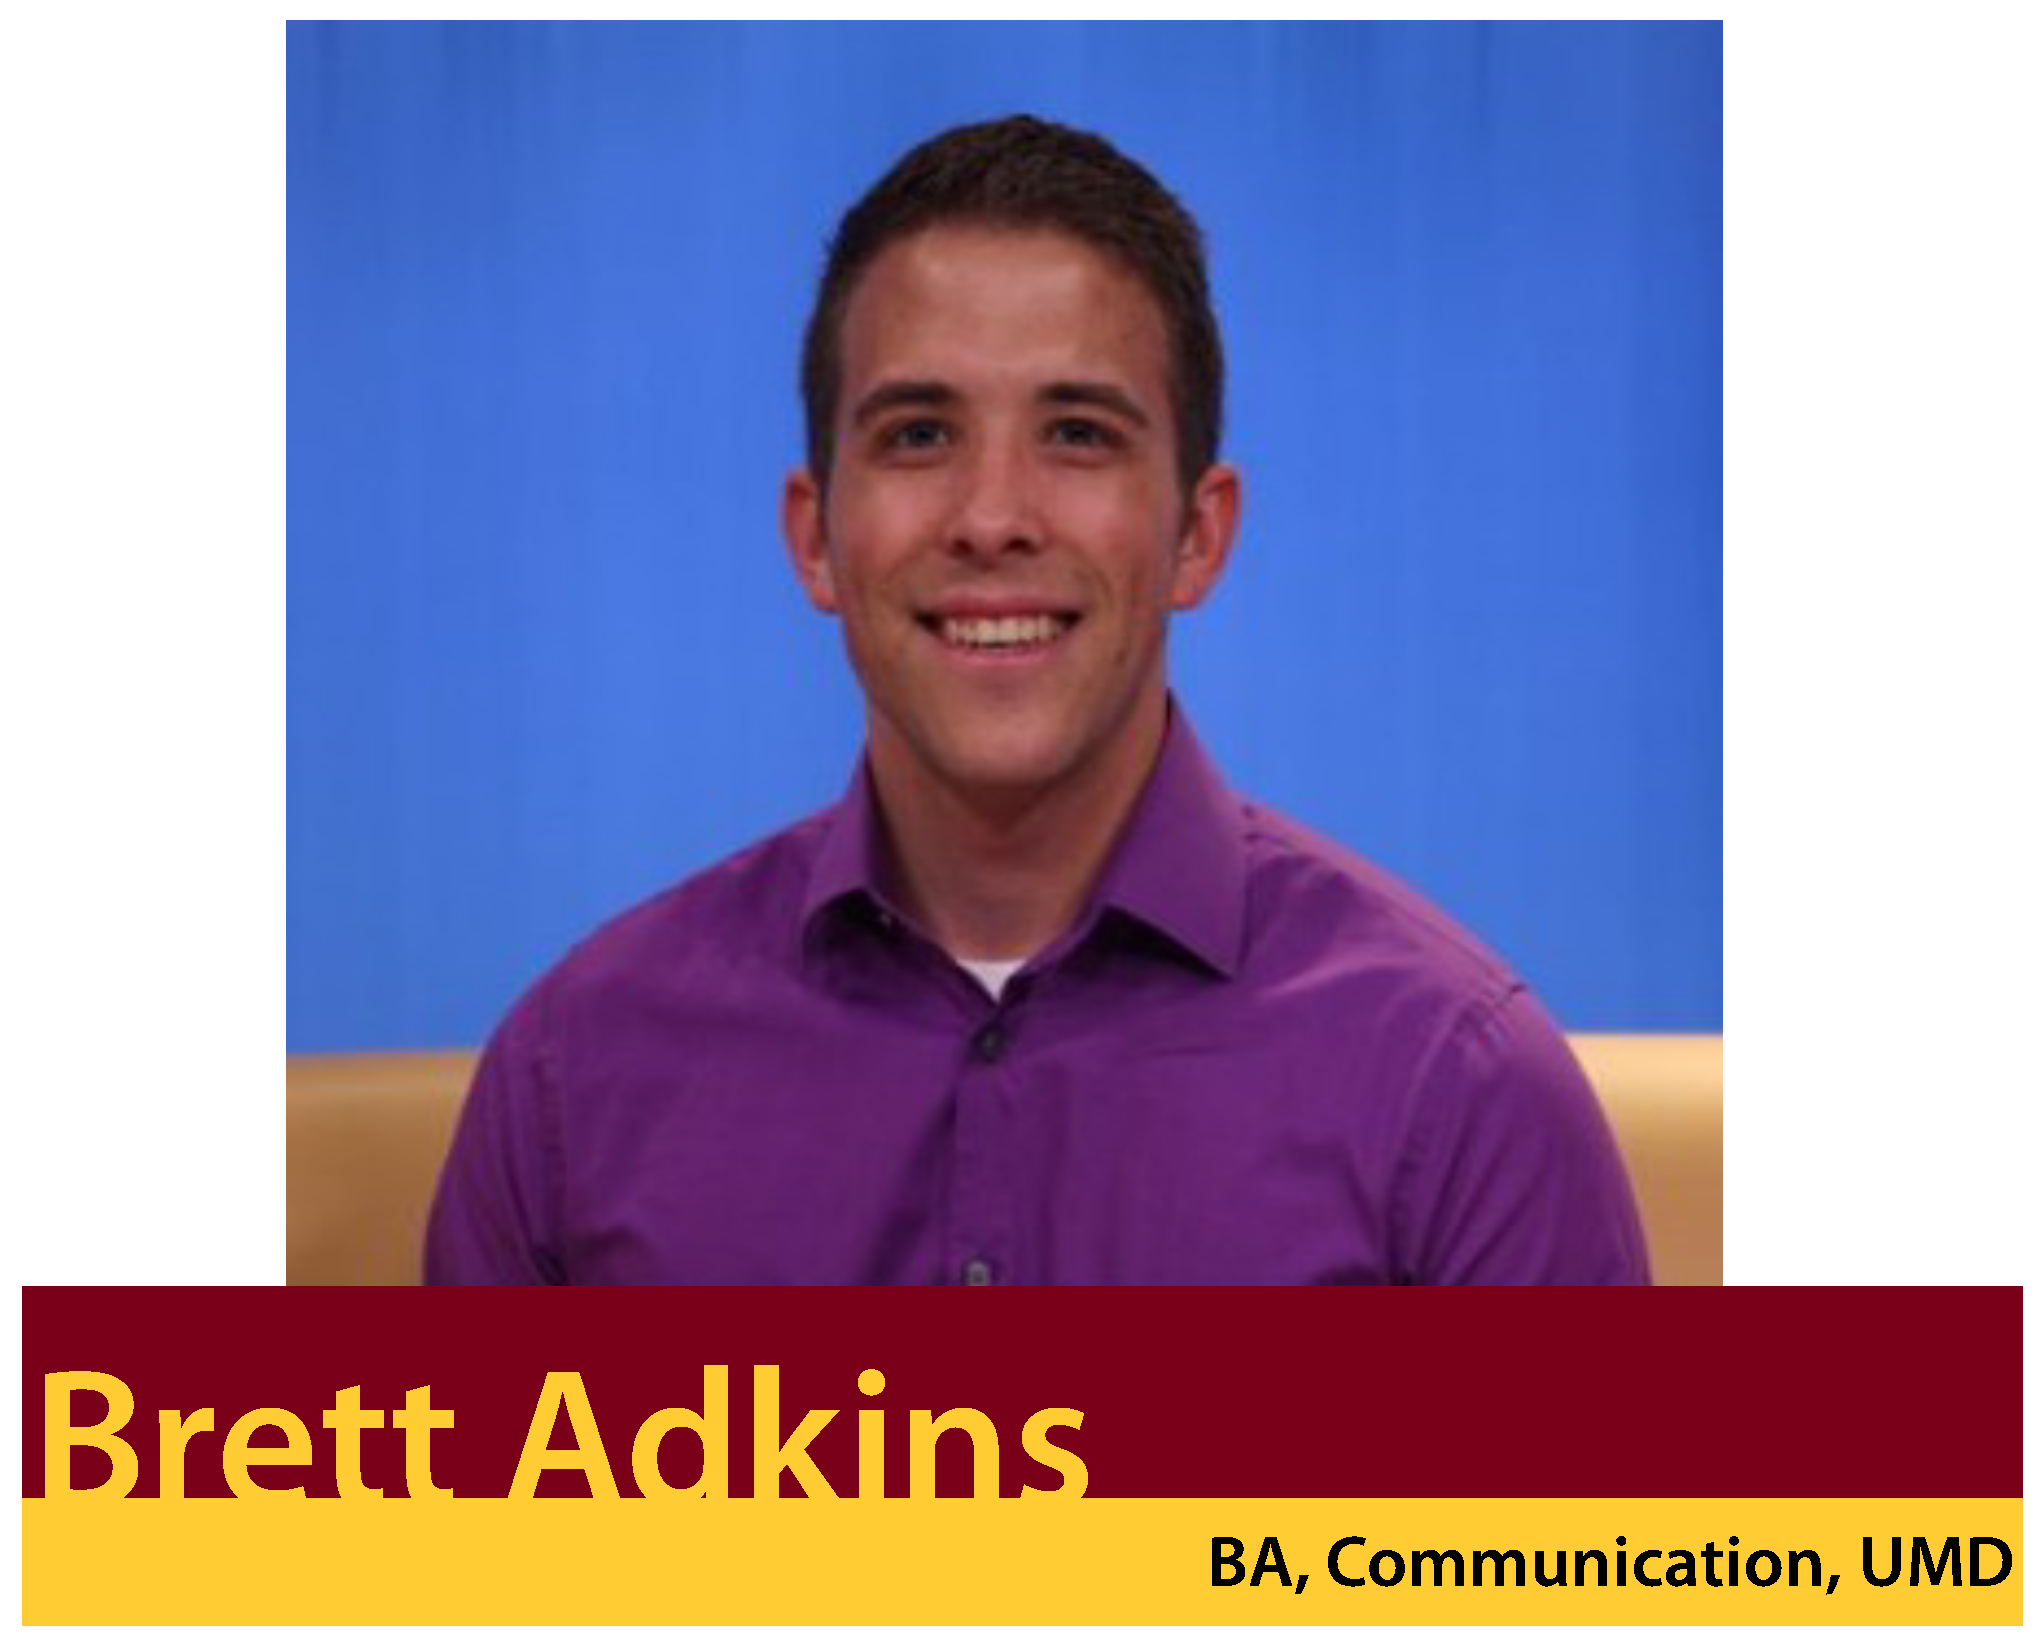 Alumni Photo: Brett Adkins